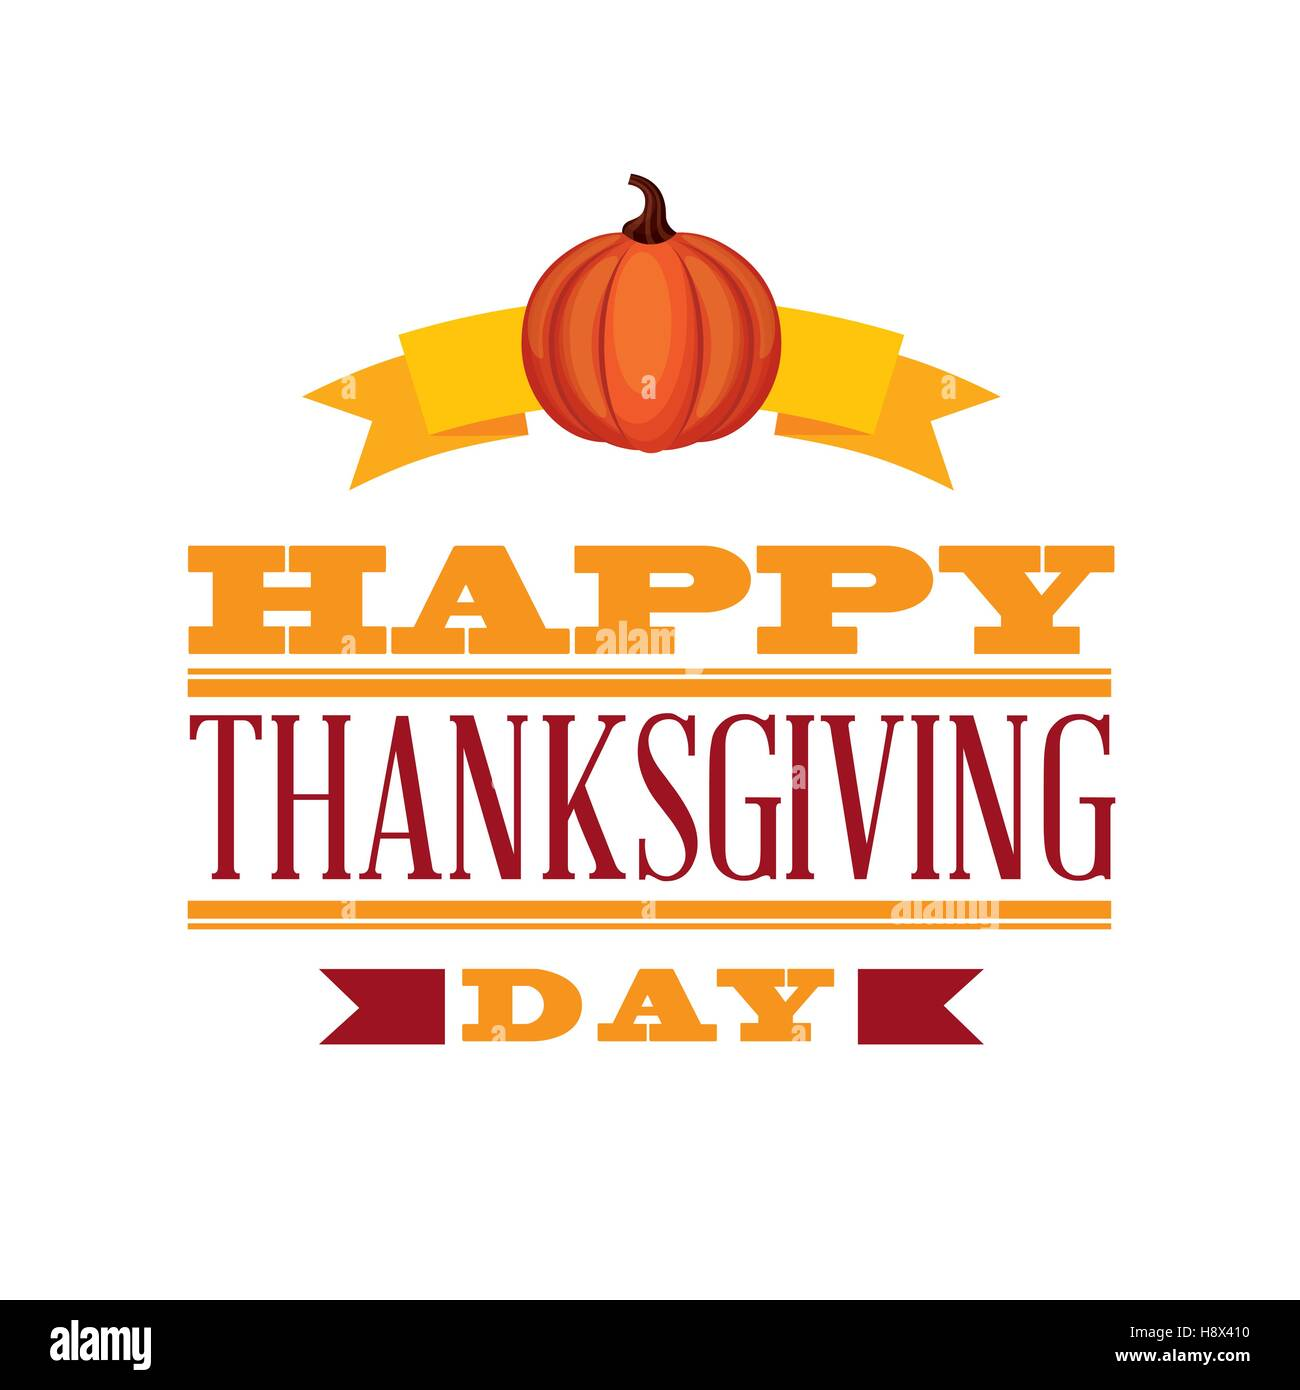 happy thanksgiving card iwth pumpkin icon over white background